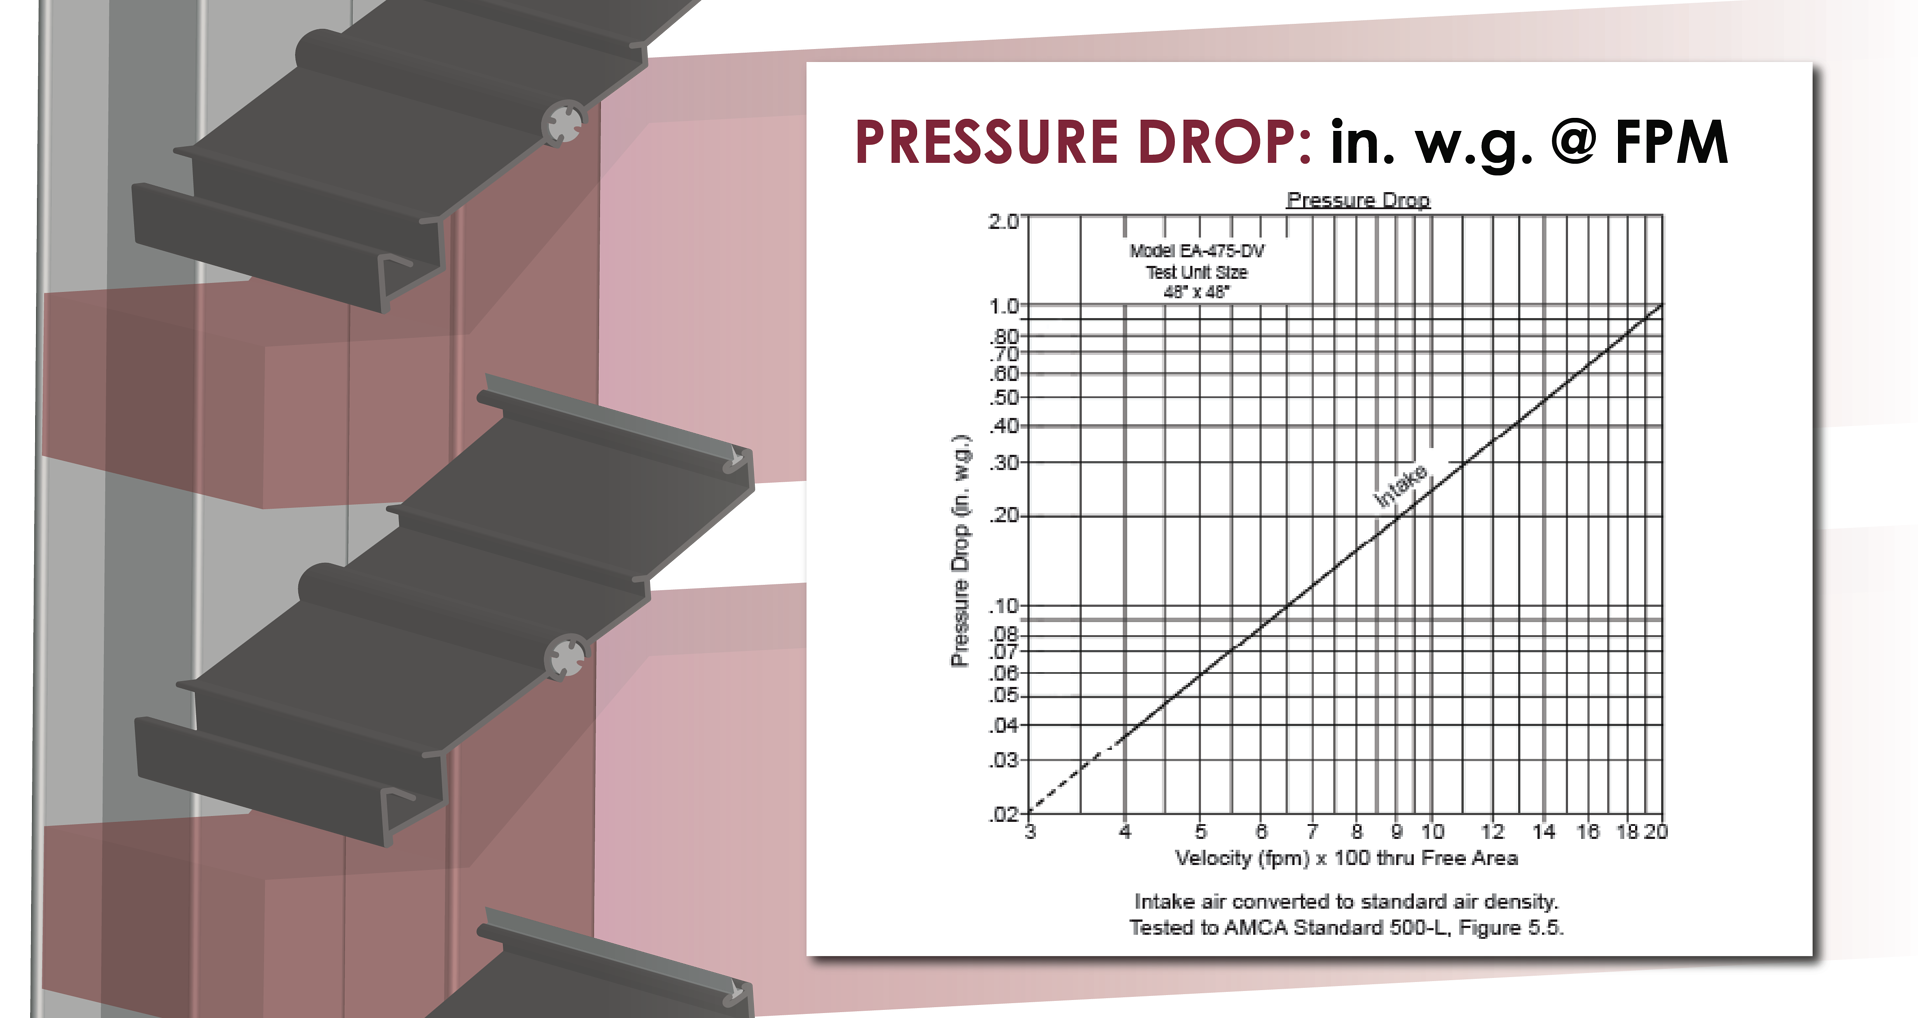 Pressure drop is the loss in pressure as air flows through a louver or damper.